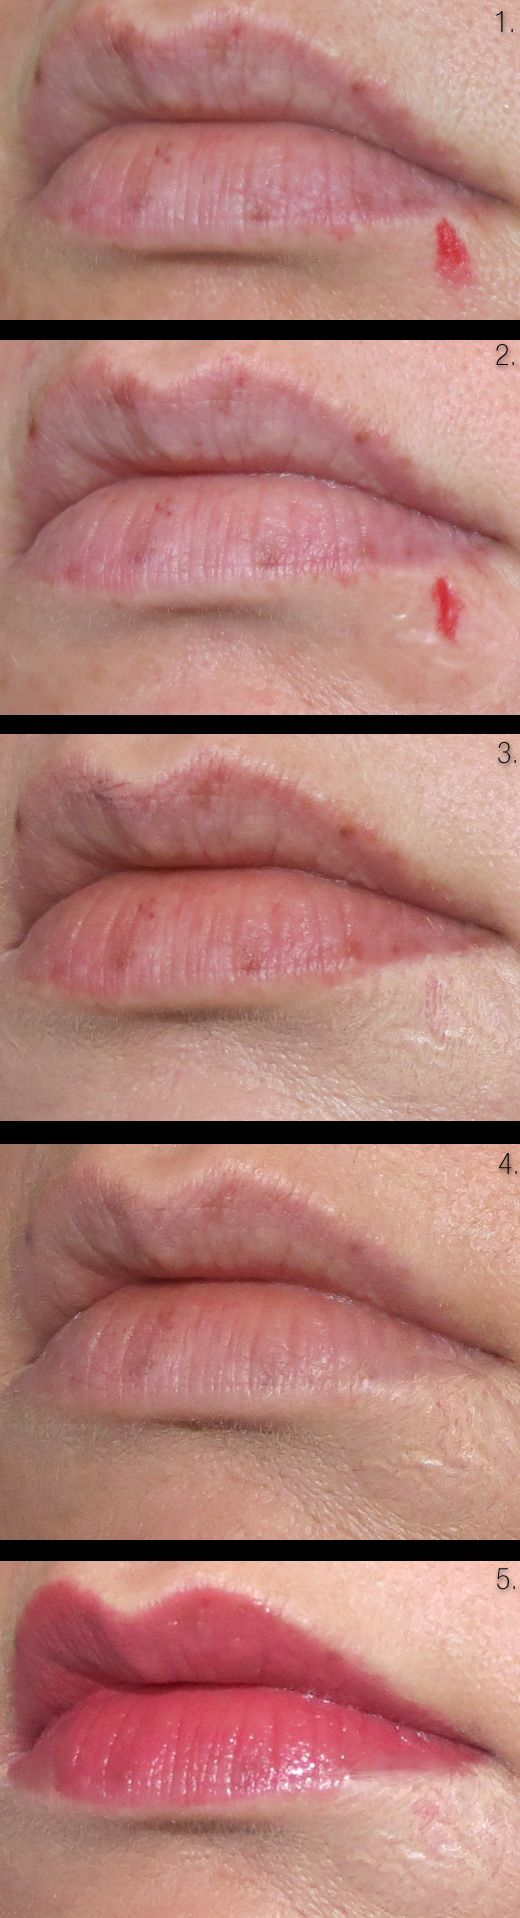 Easy Steps to Get Rid of Awful Cold Sores